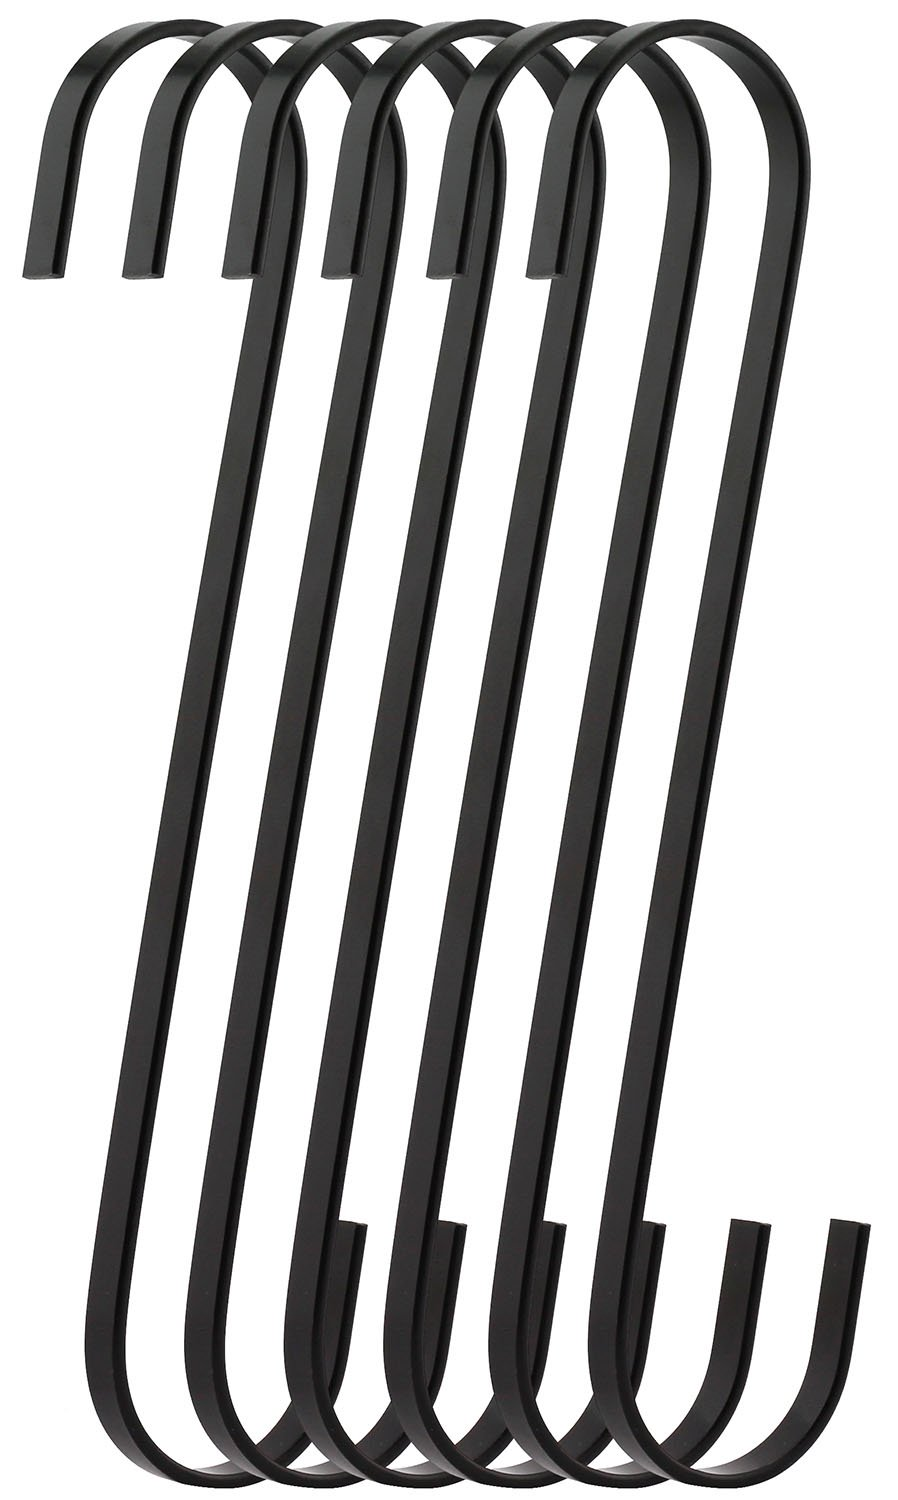 RuiLing 6 Pack 9 Inch Black Chrome Finish Steel Hanging Flat Hooks S Shaped Hook Heavy Duty S Hooks for Kitchenware Pots Utensils Plants Towels Gardening Tools Clothes